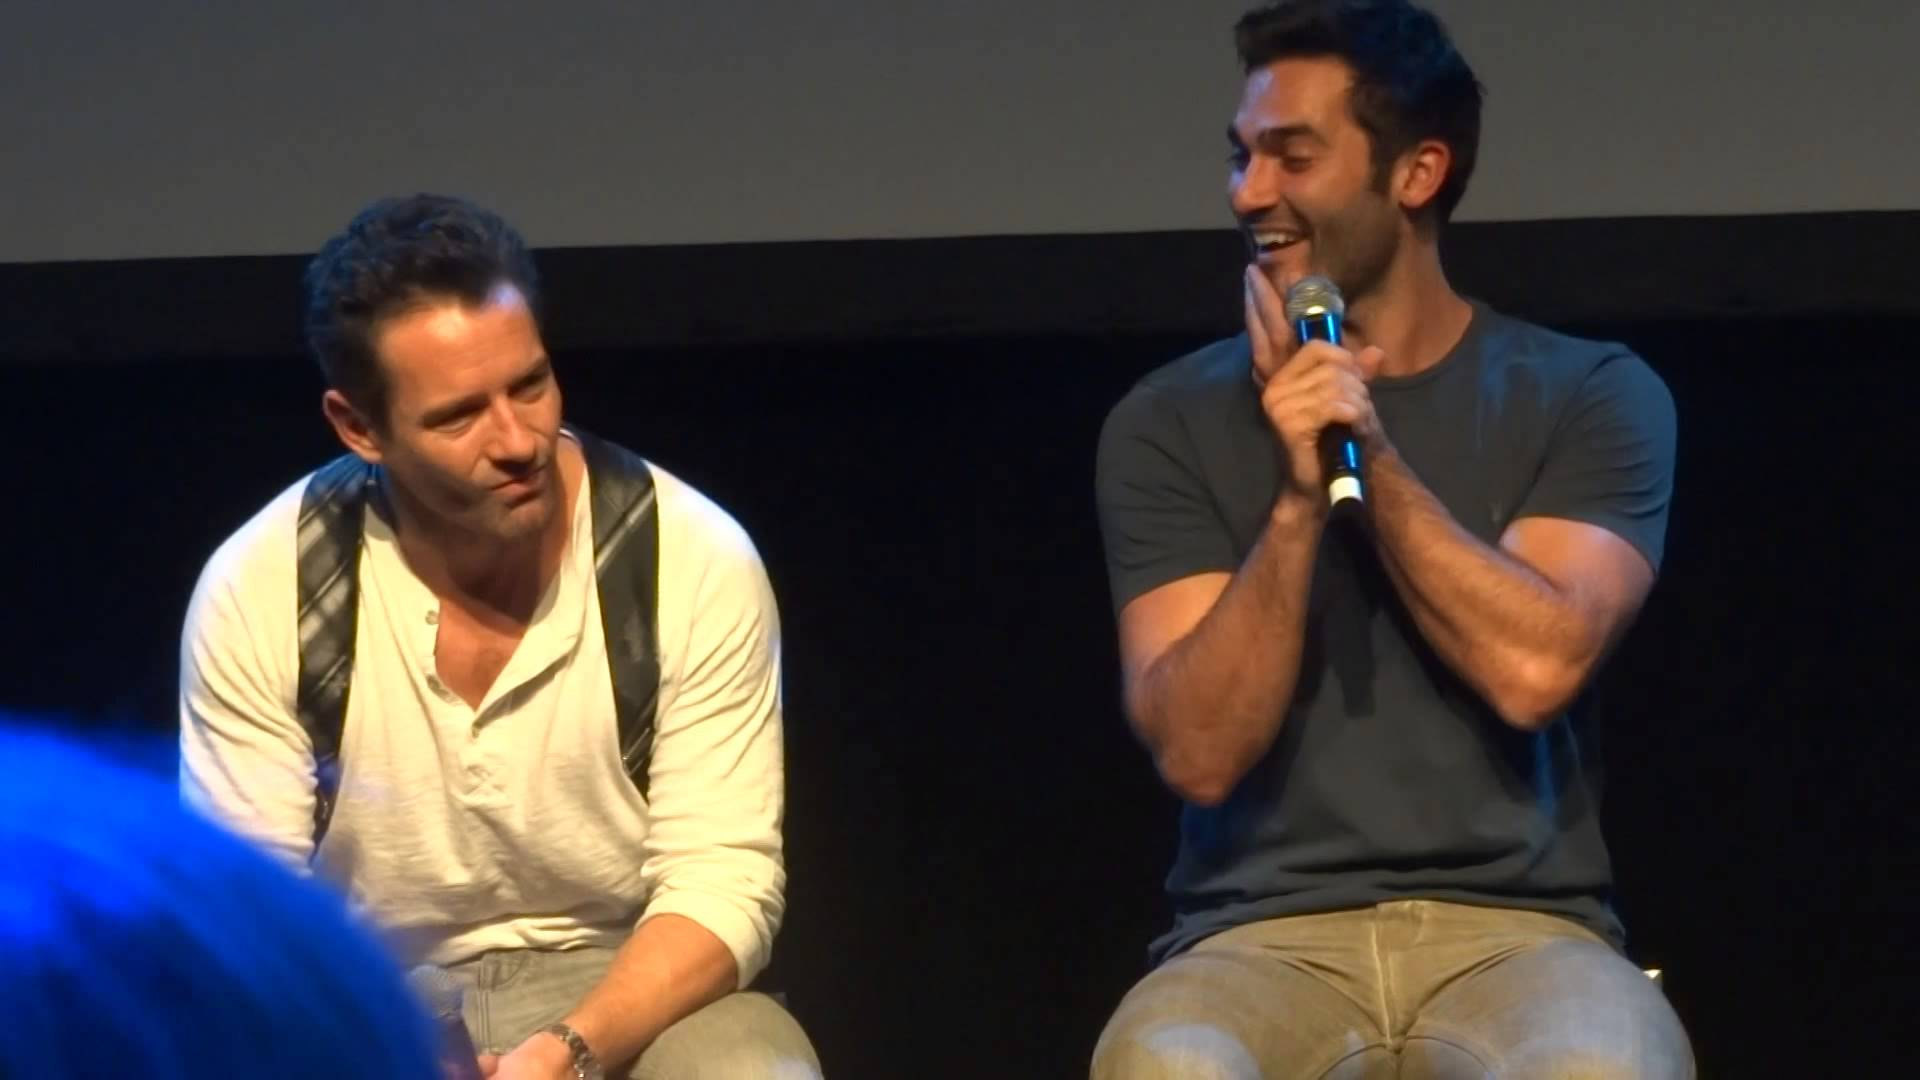 Tyler Hoechlin & Ian Bohen Panel WereWolfCon 2015 - YouTube